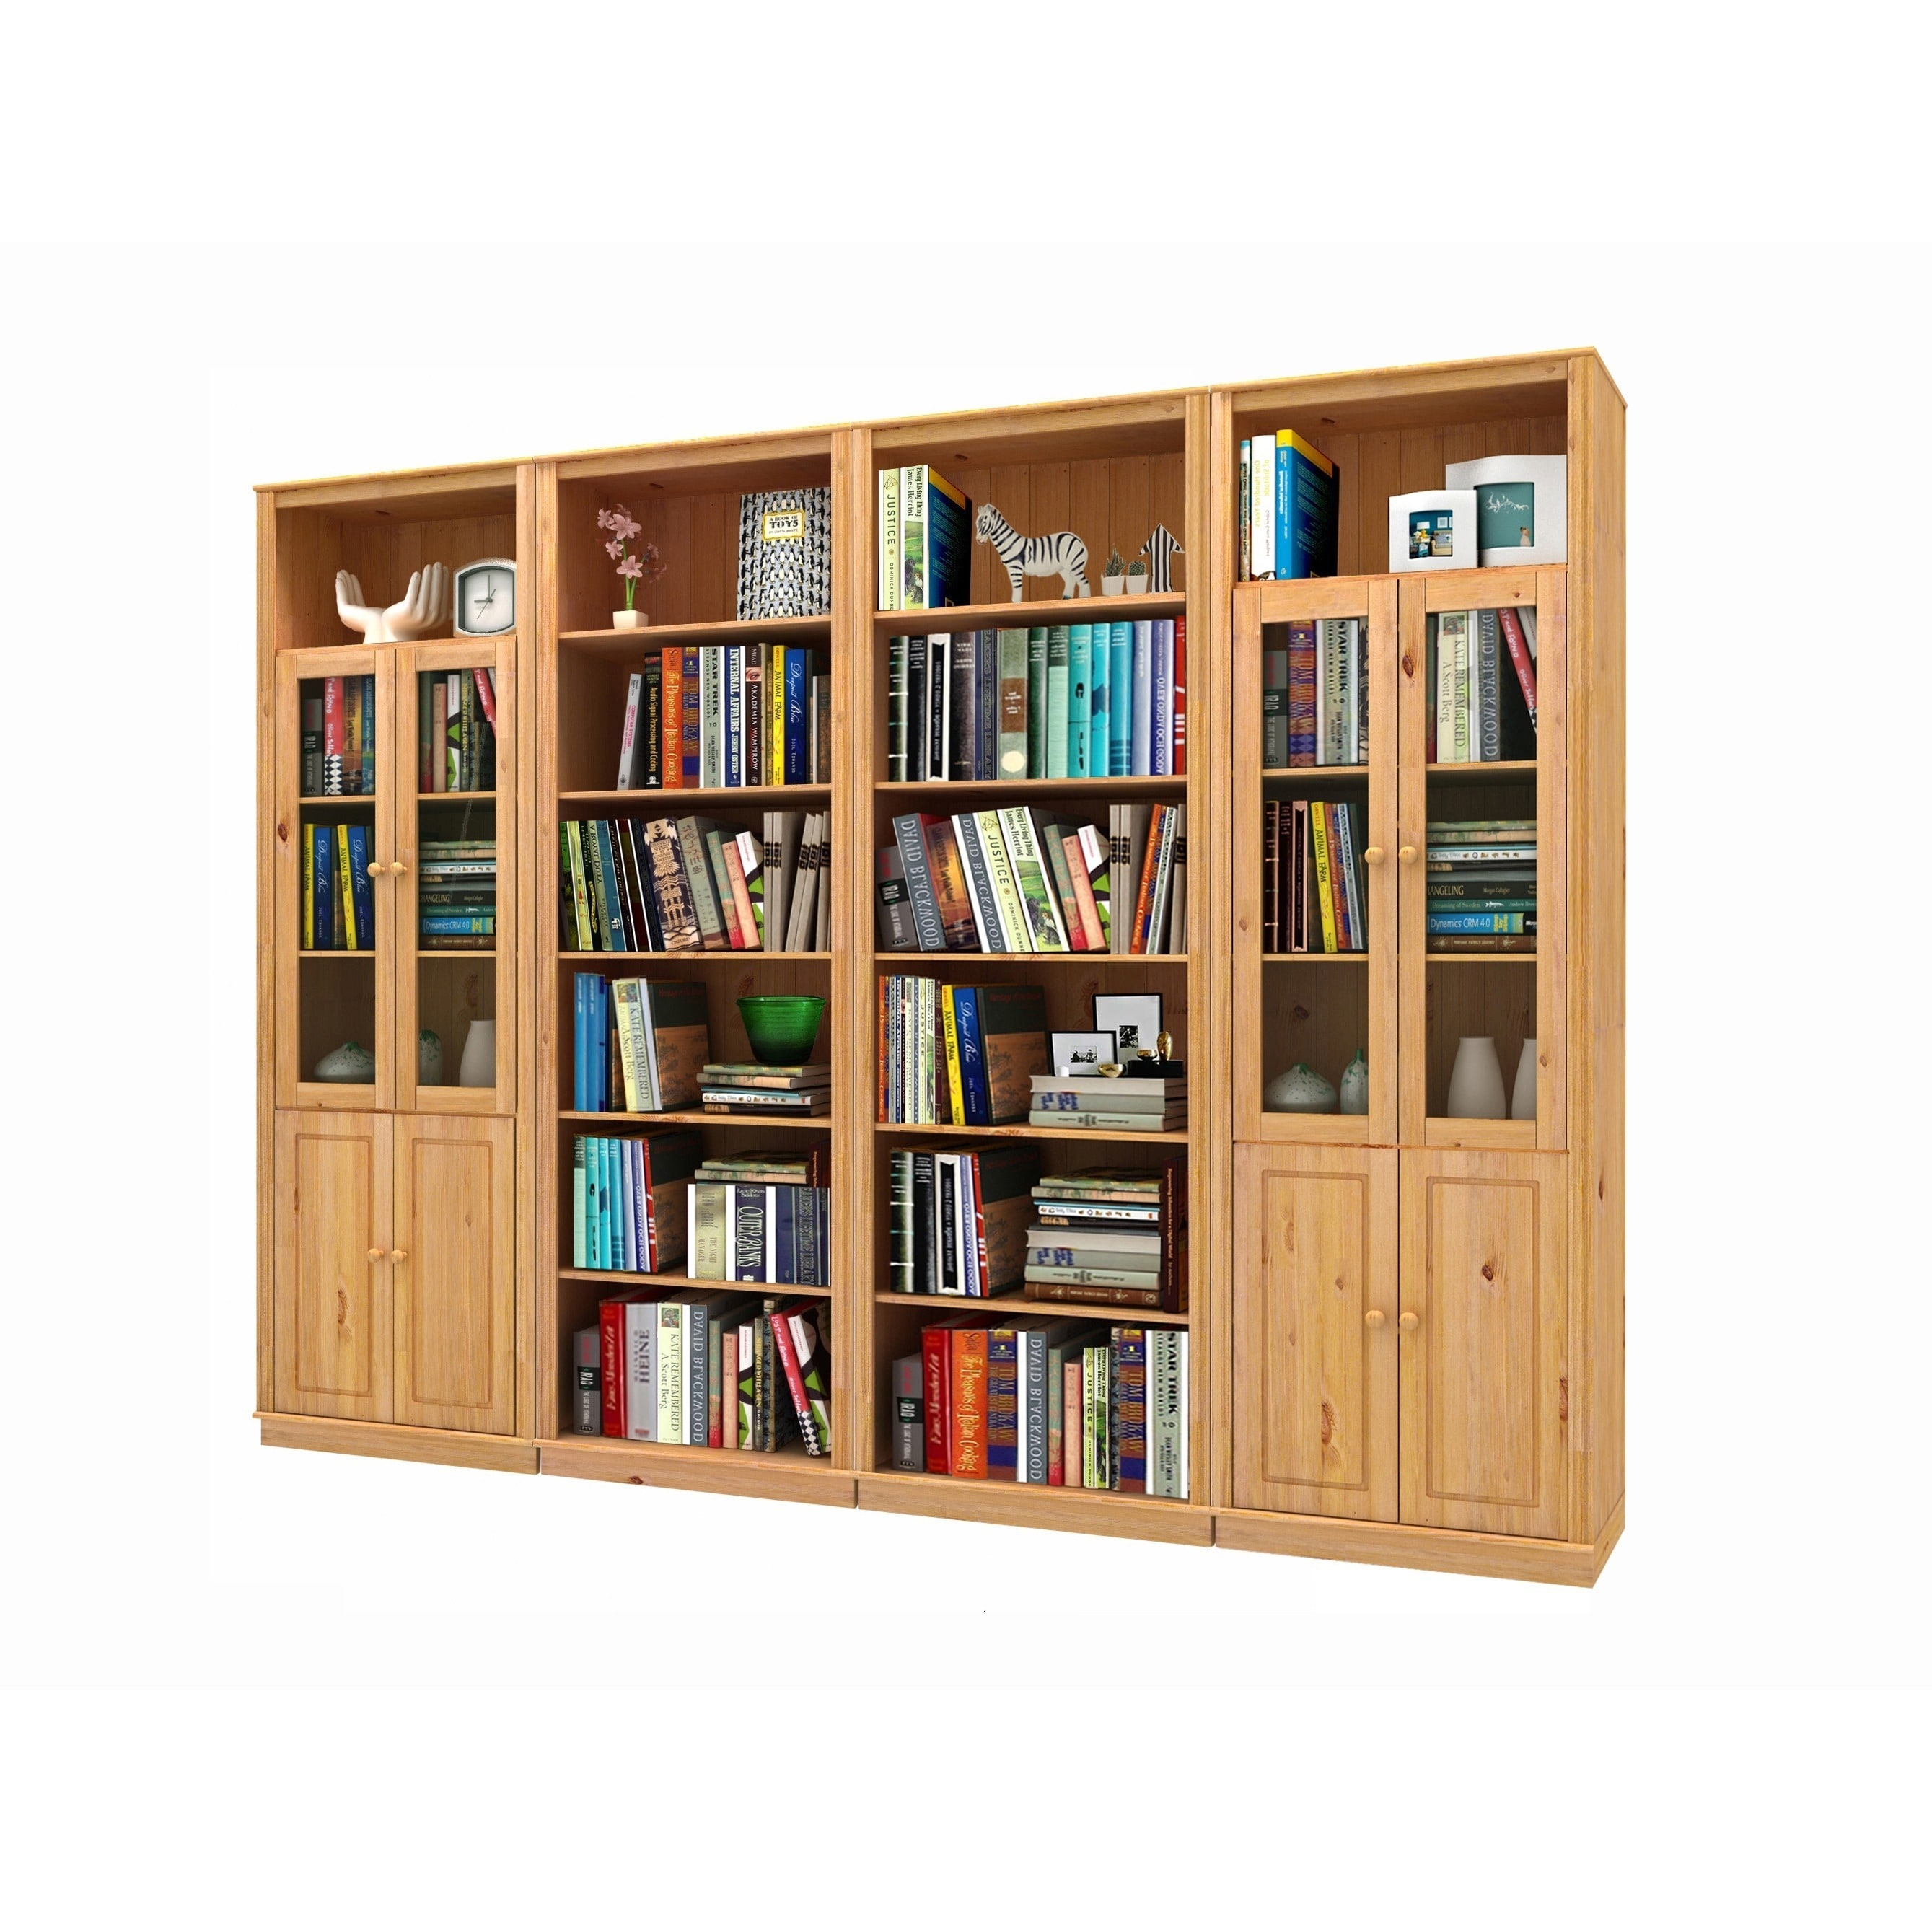 wood elegant glass sliding with freestanding bookcases rustic designs doors bookshelf of